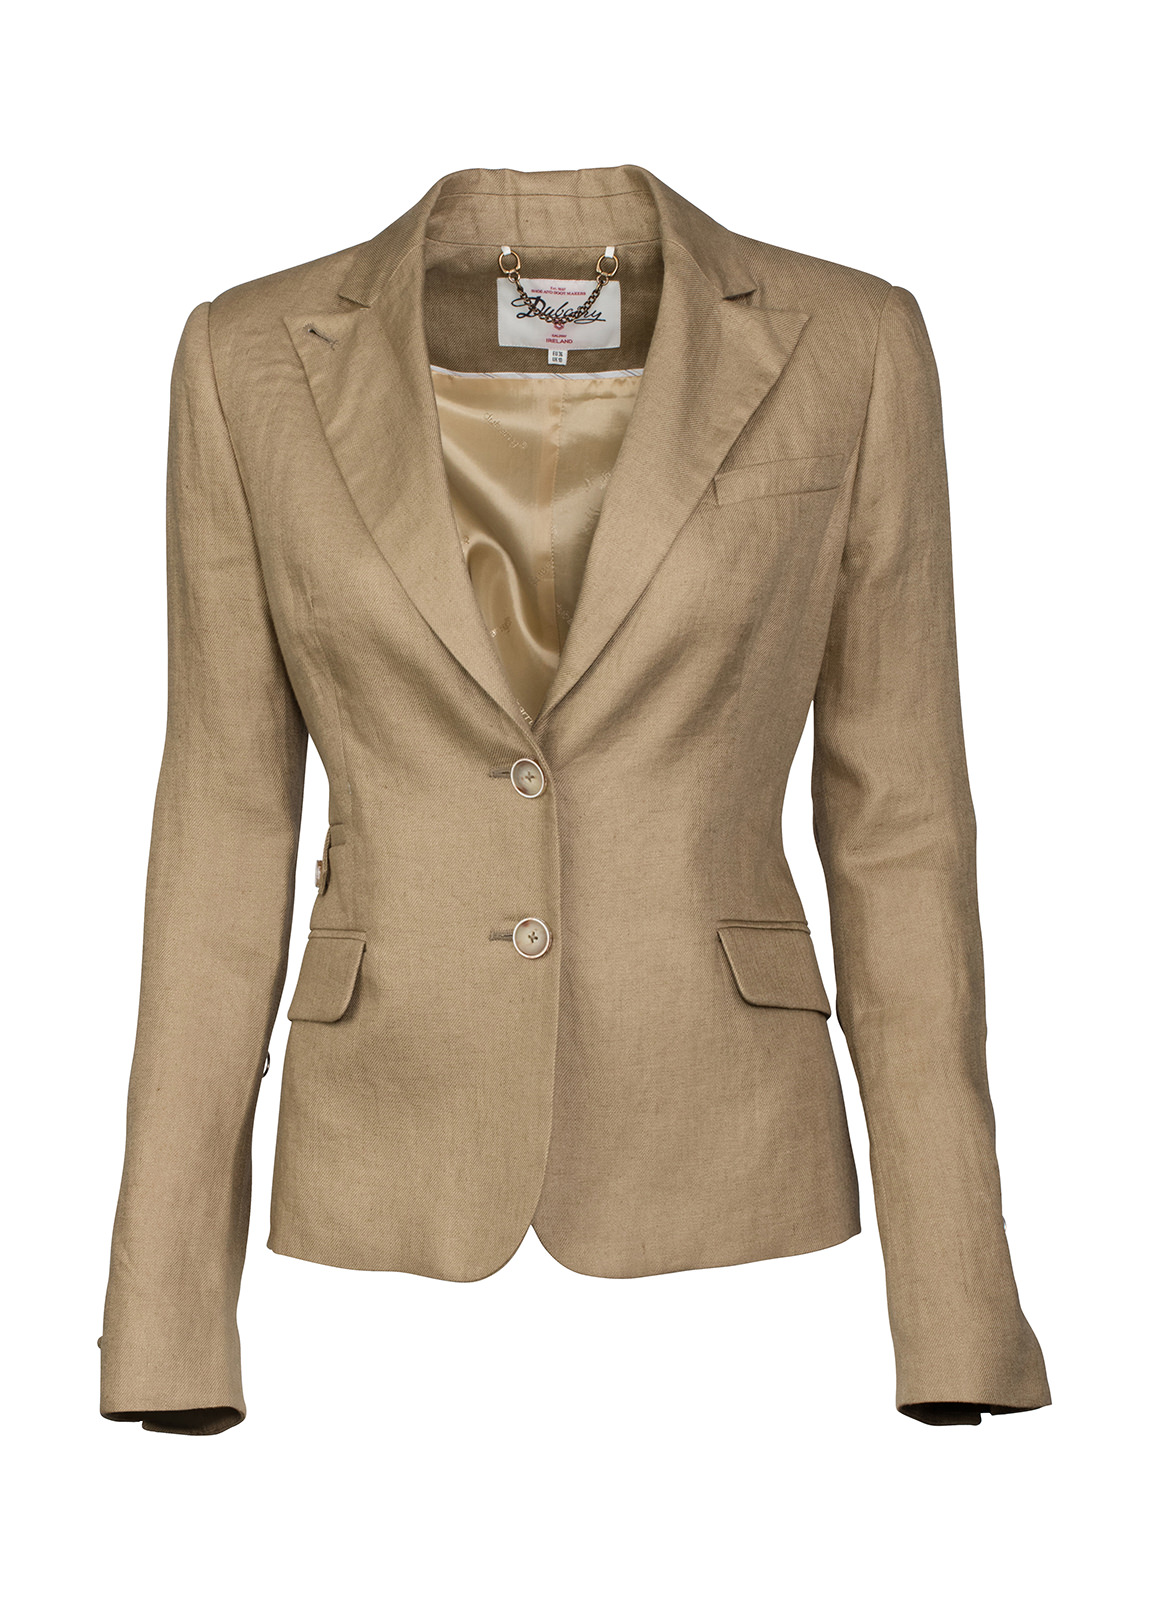 Dubarry_ Blairscove Women's Linen Blazer - Ruby Red_Image_2